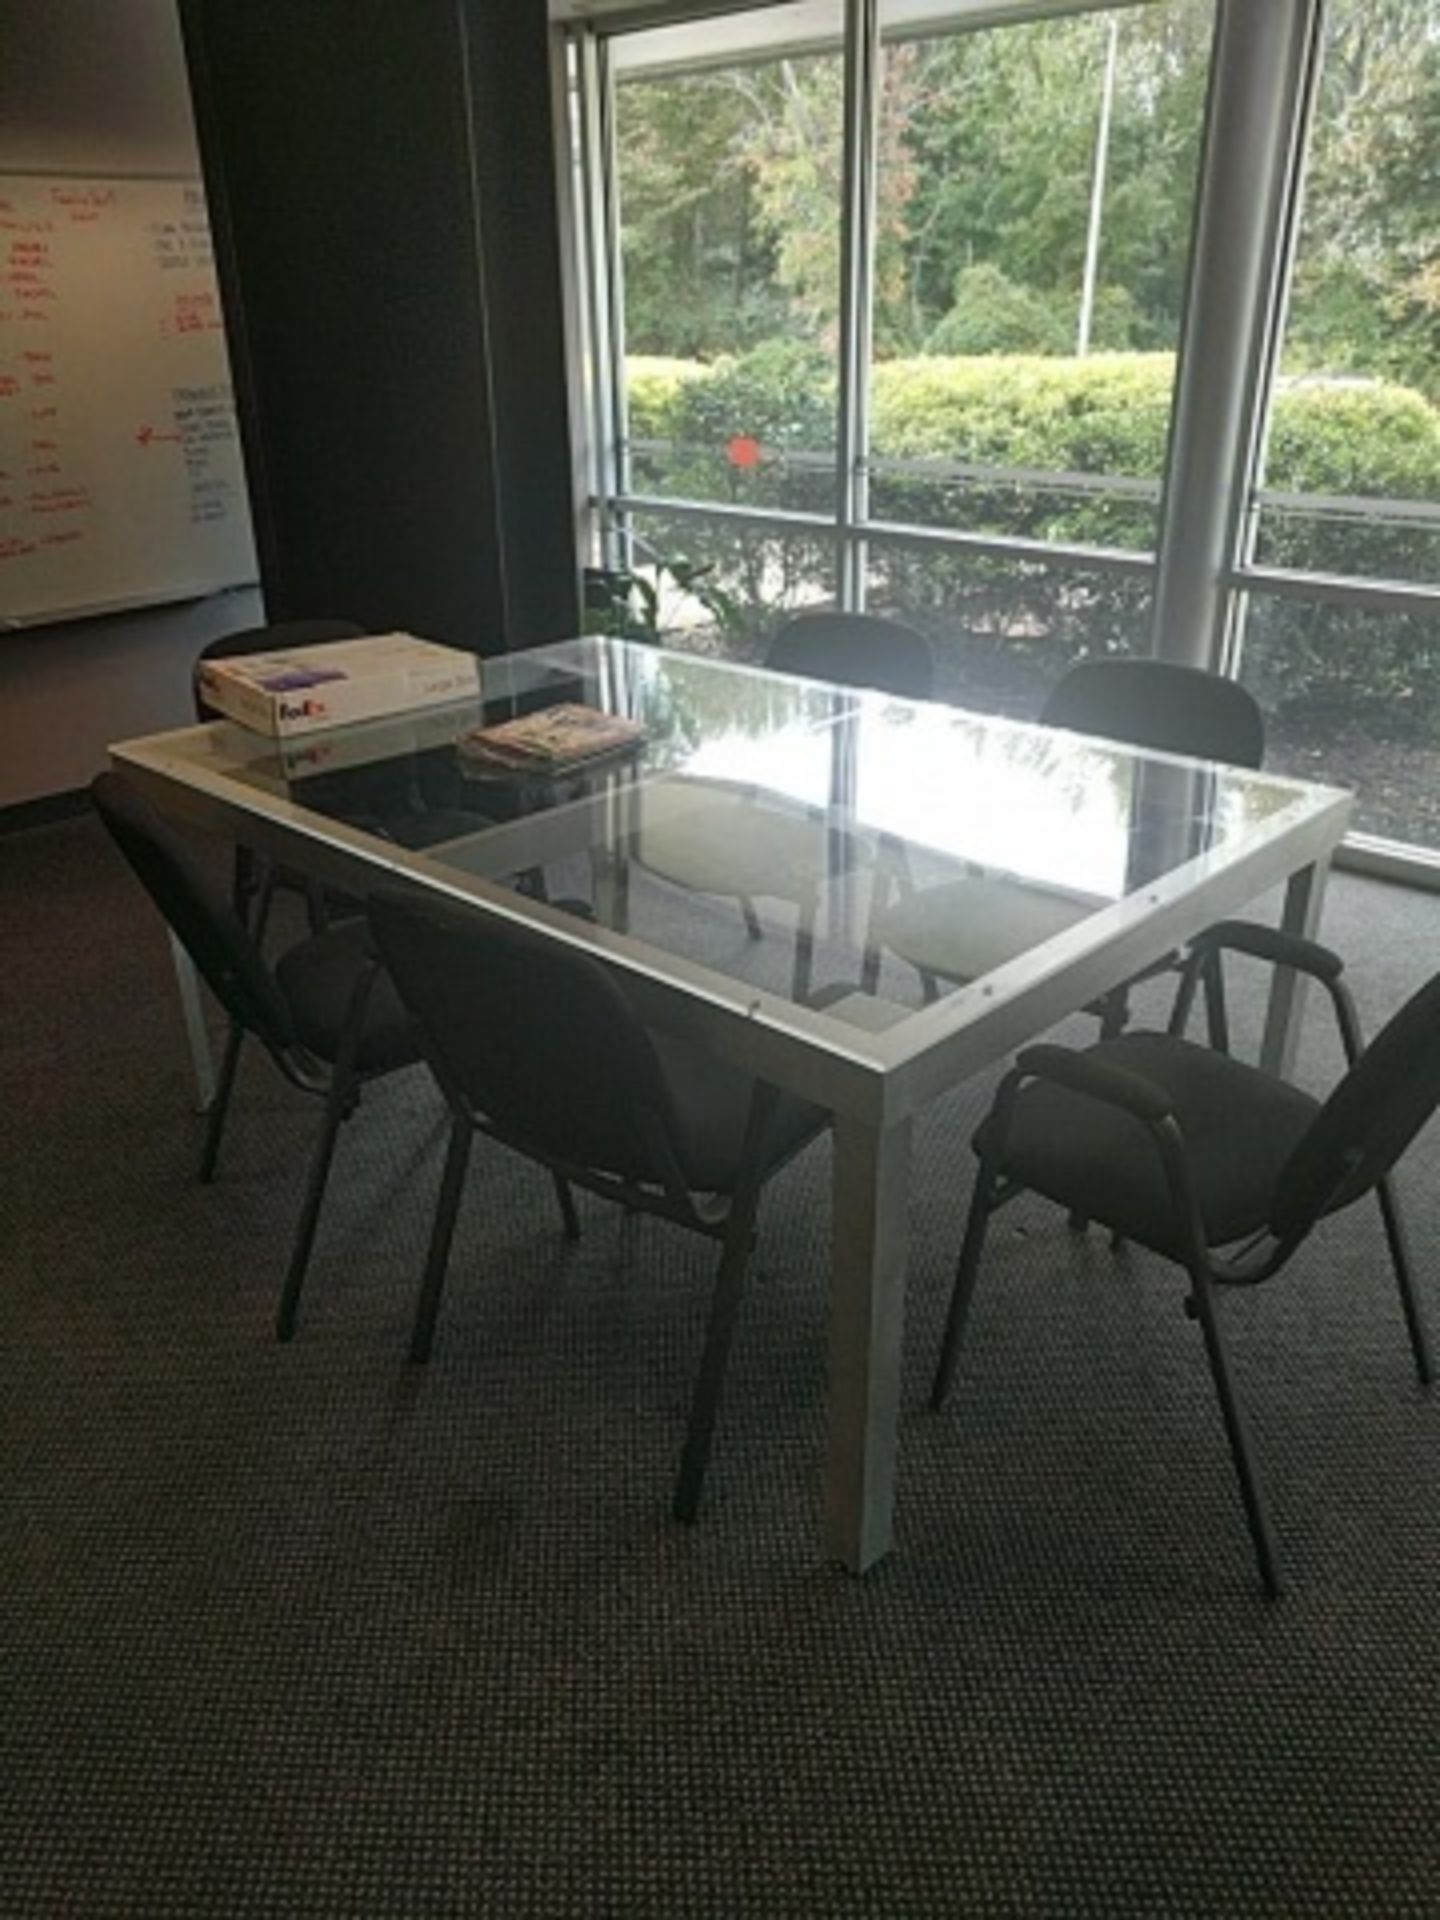 Lot 2 - Assorted Office Furniture